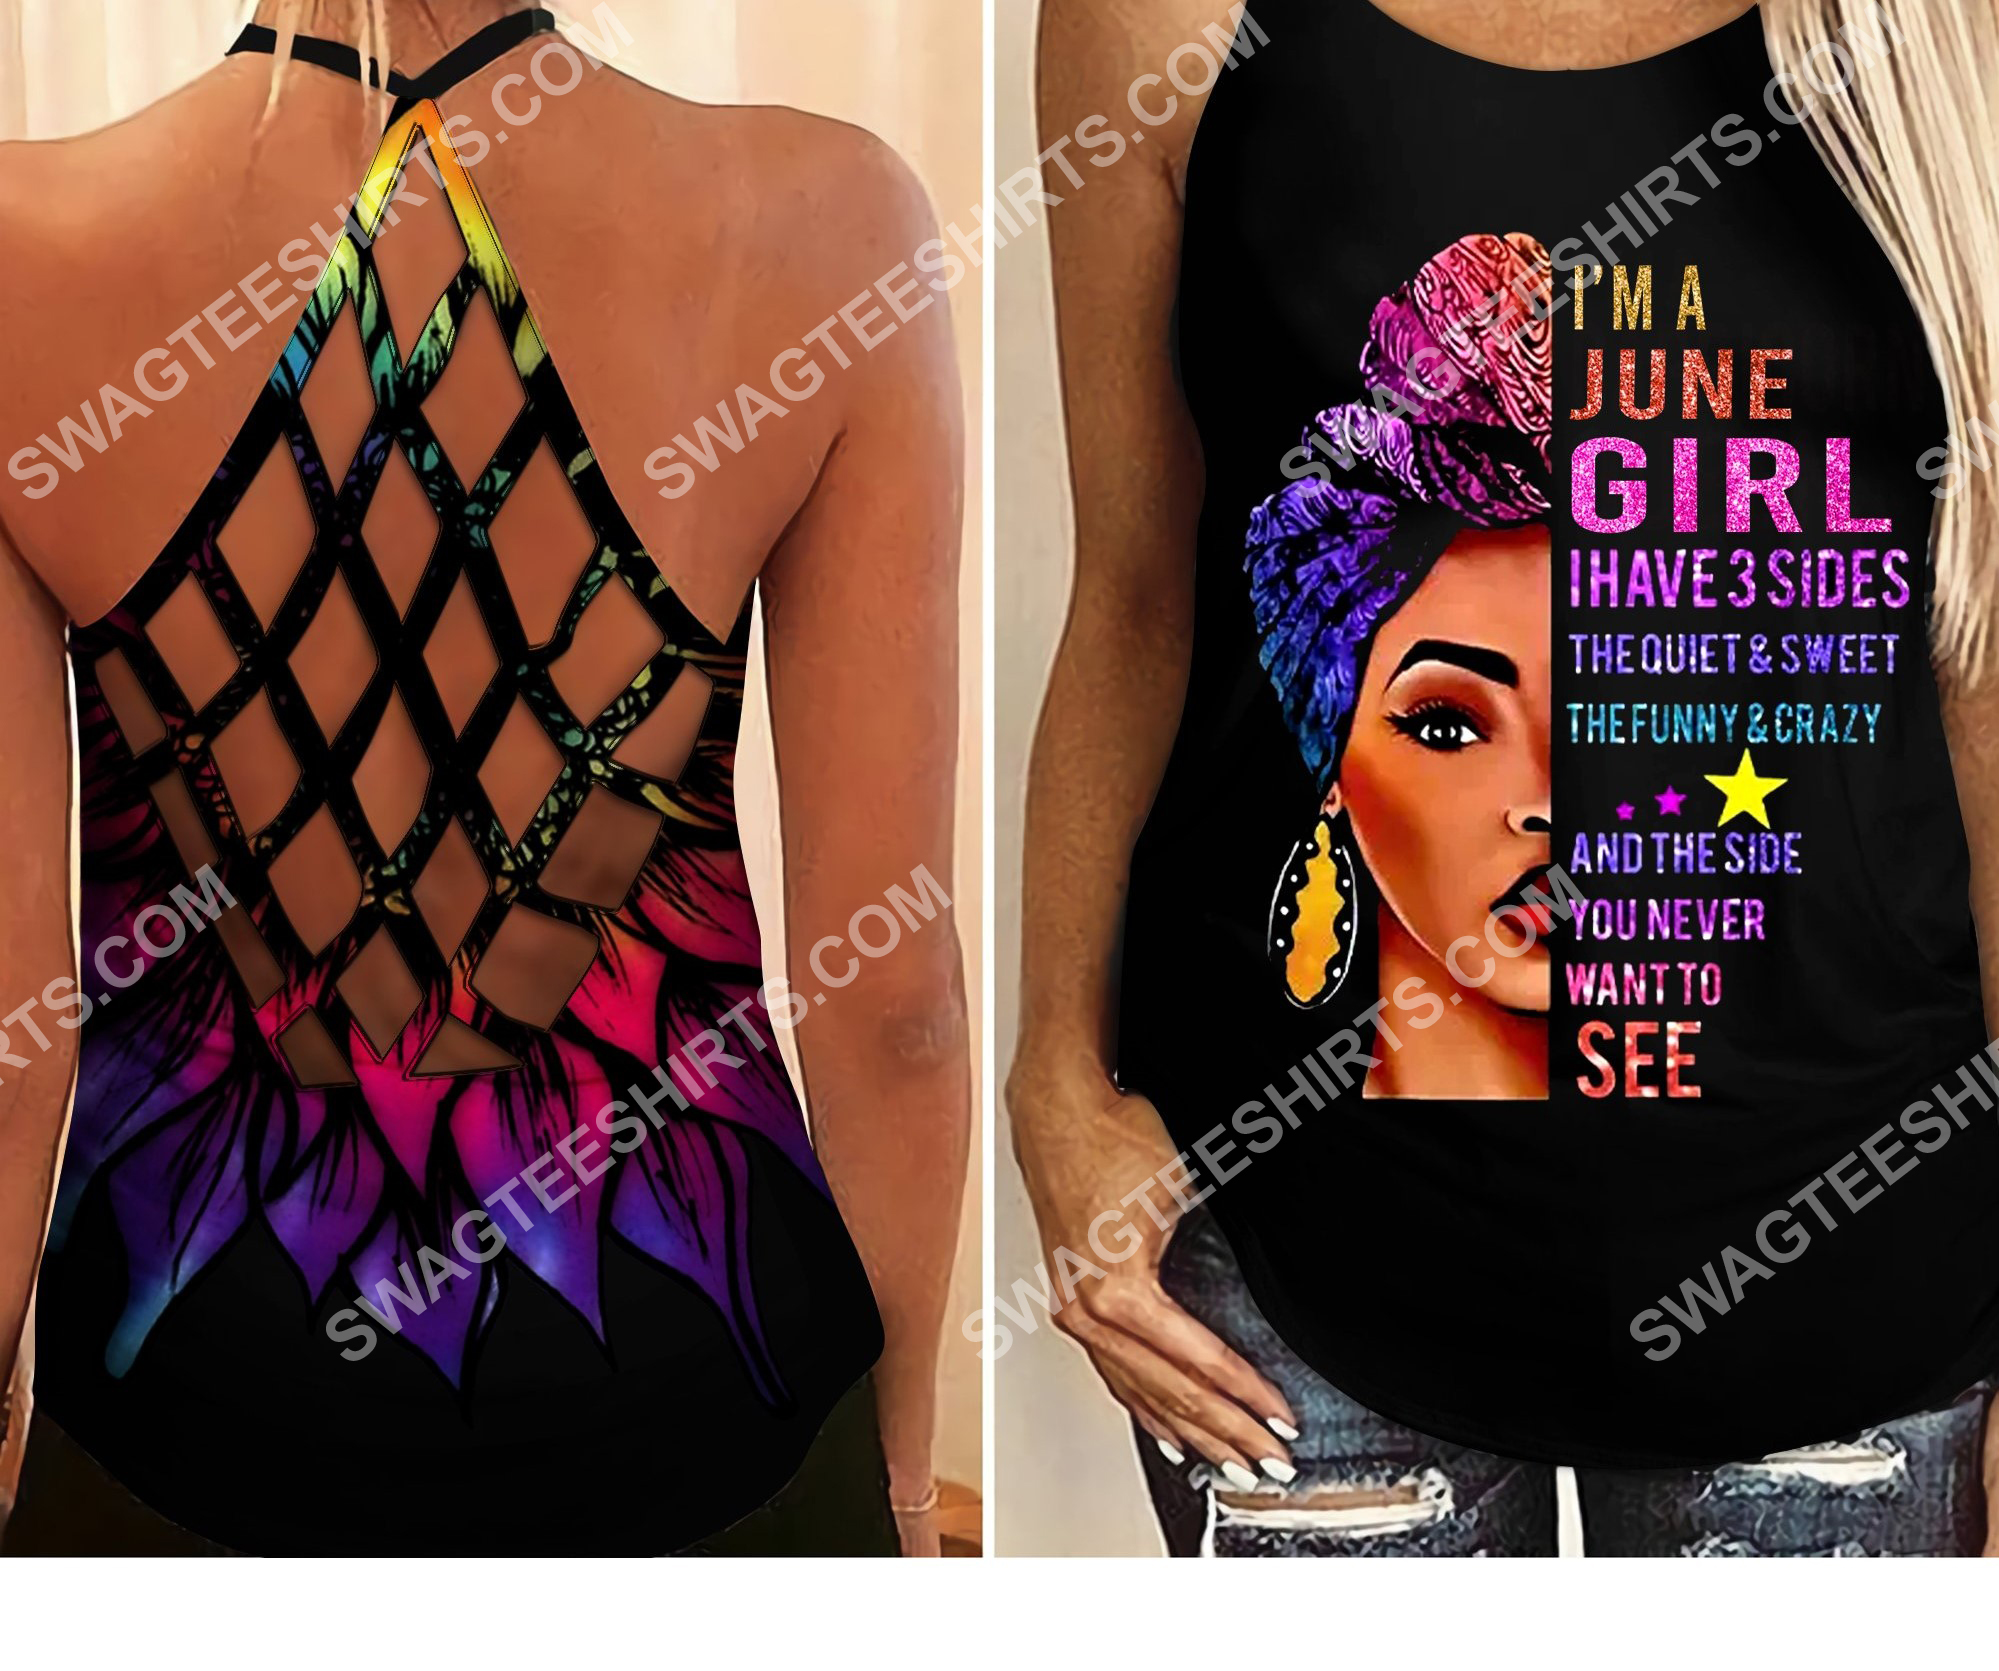 i'm a june girl i have 3 sides the quiet and sweet all over printed criss-cross tank top 2 - Copy